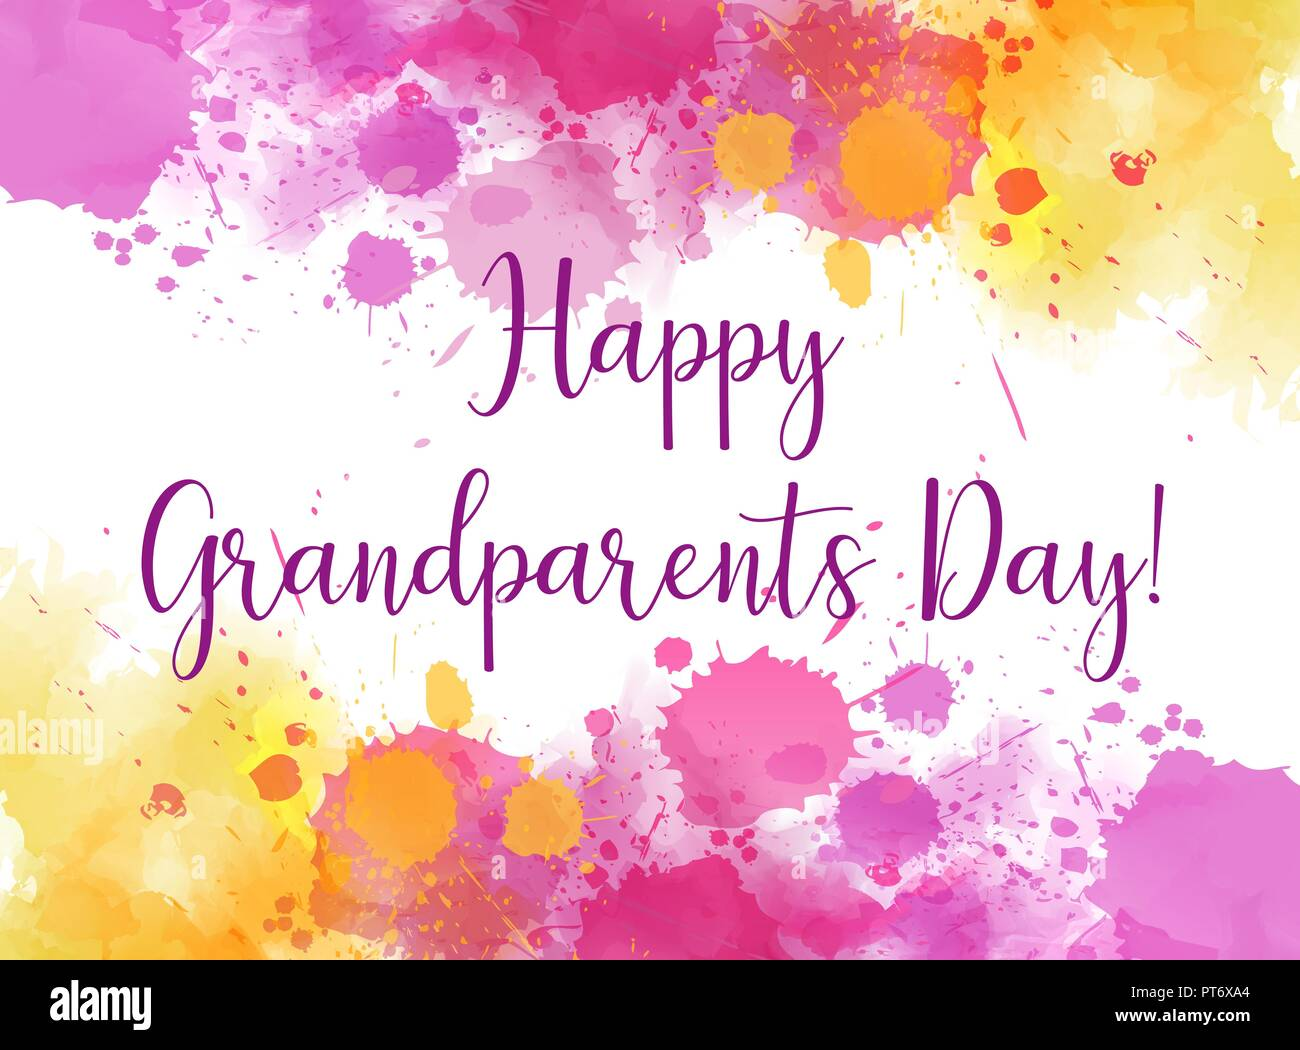 Happy Grandparents Day Abstract Greeting Card Background With Watercolor Splashes Frame Stock Vector Image Art Alamy